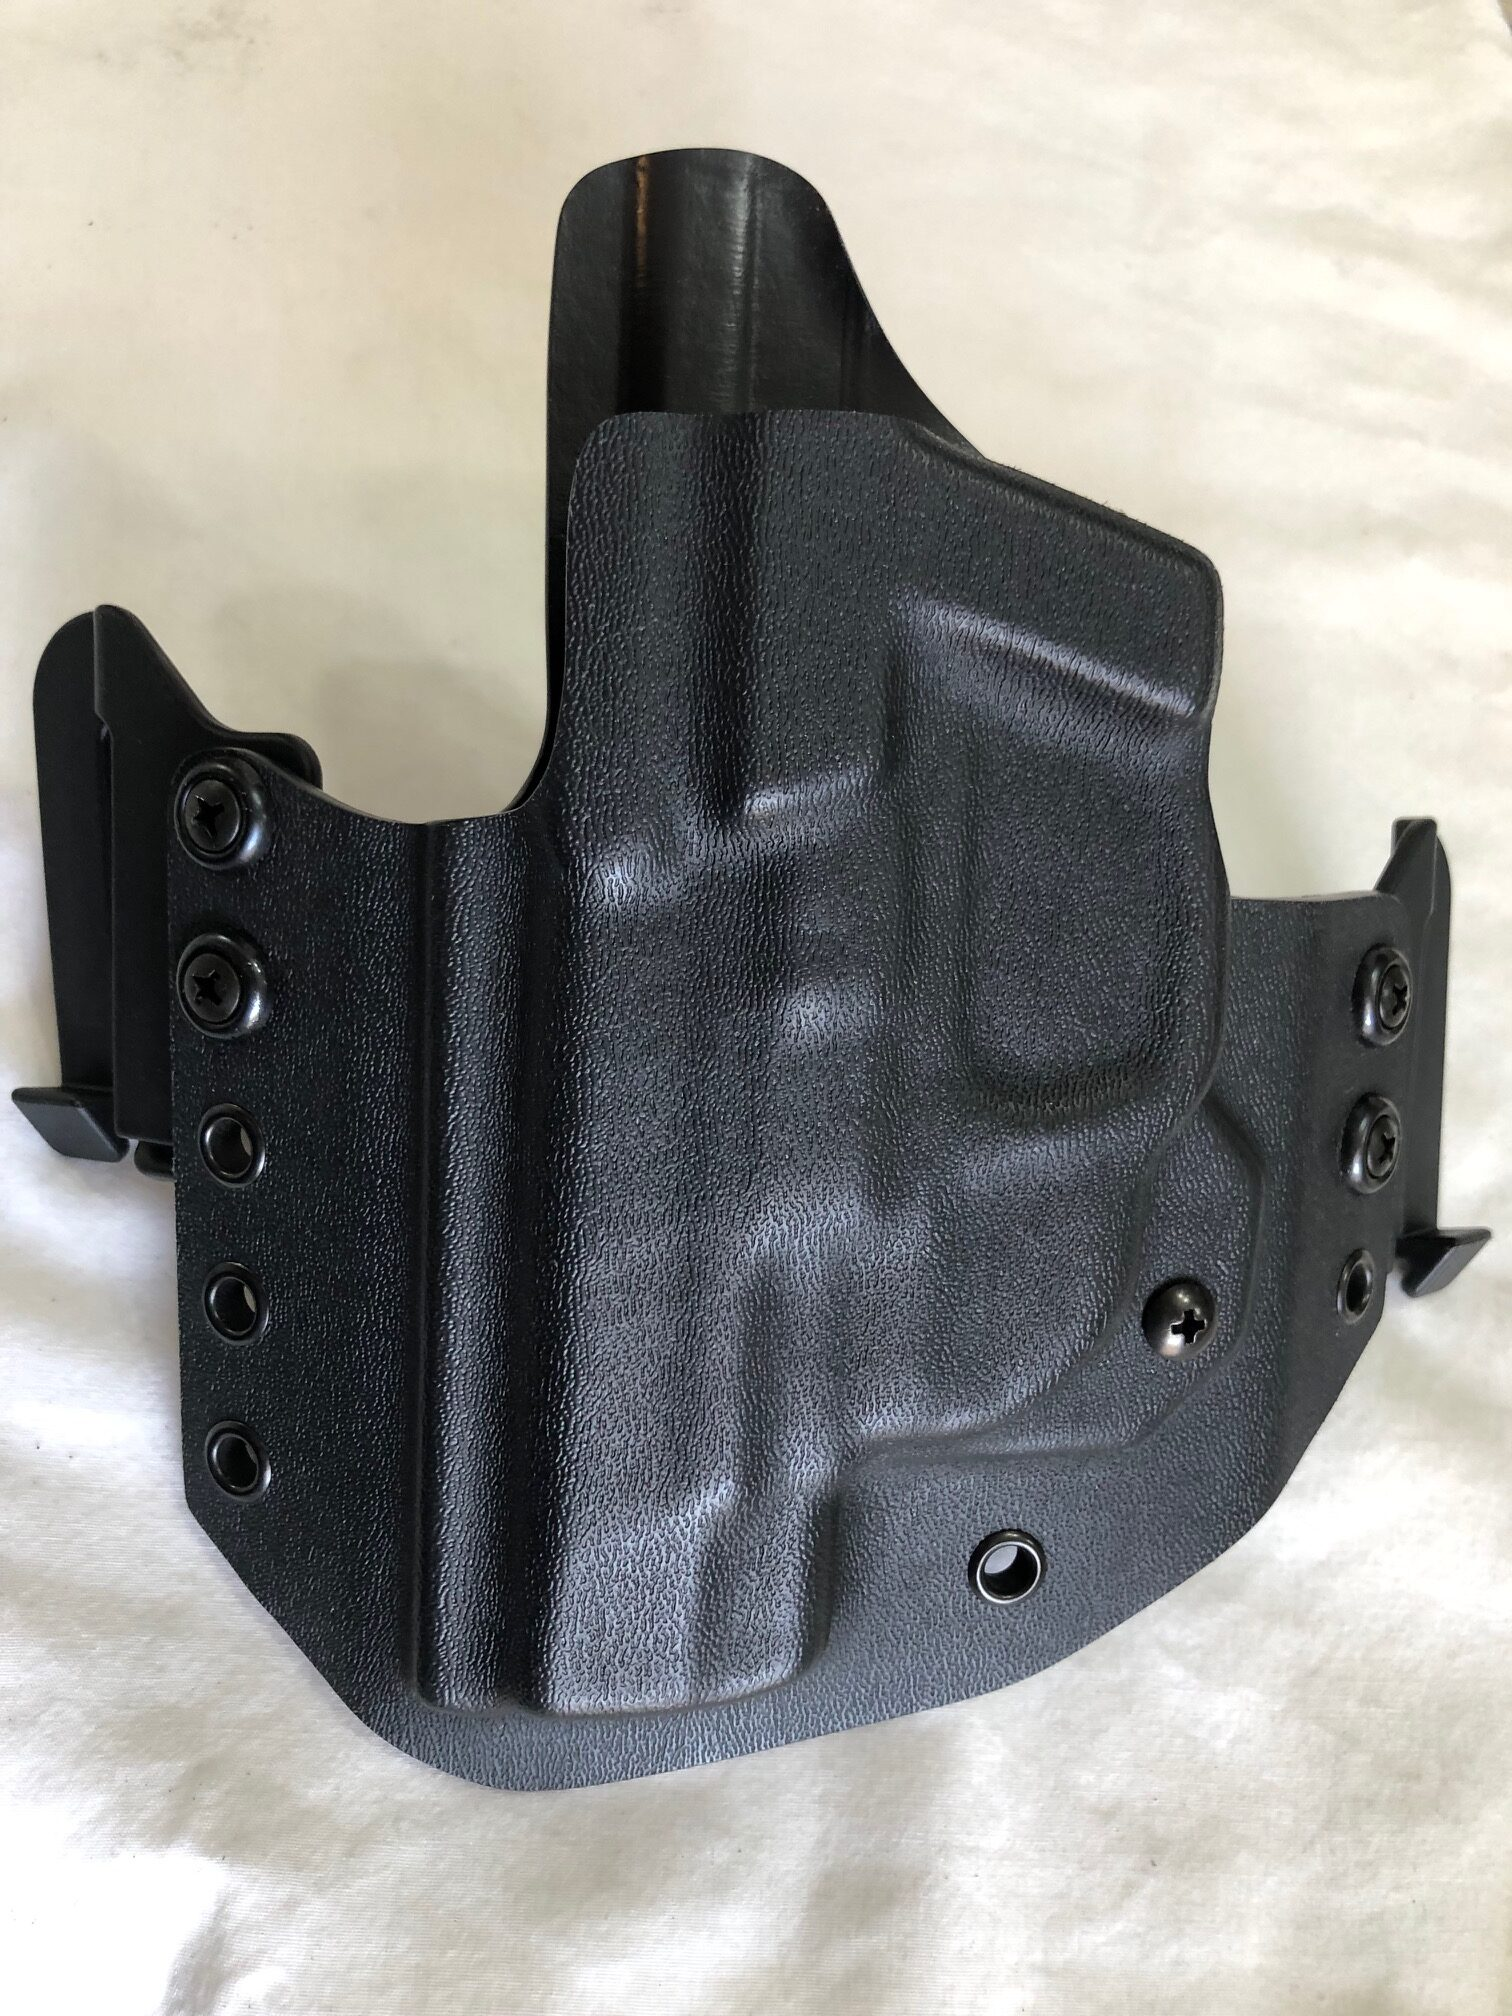 Pro-Tech Gun Holster plus Extra-Magazine Holder For Kahr P-380 with Laser